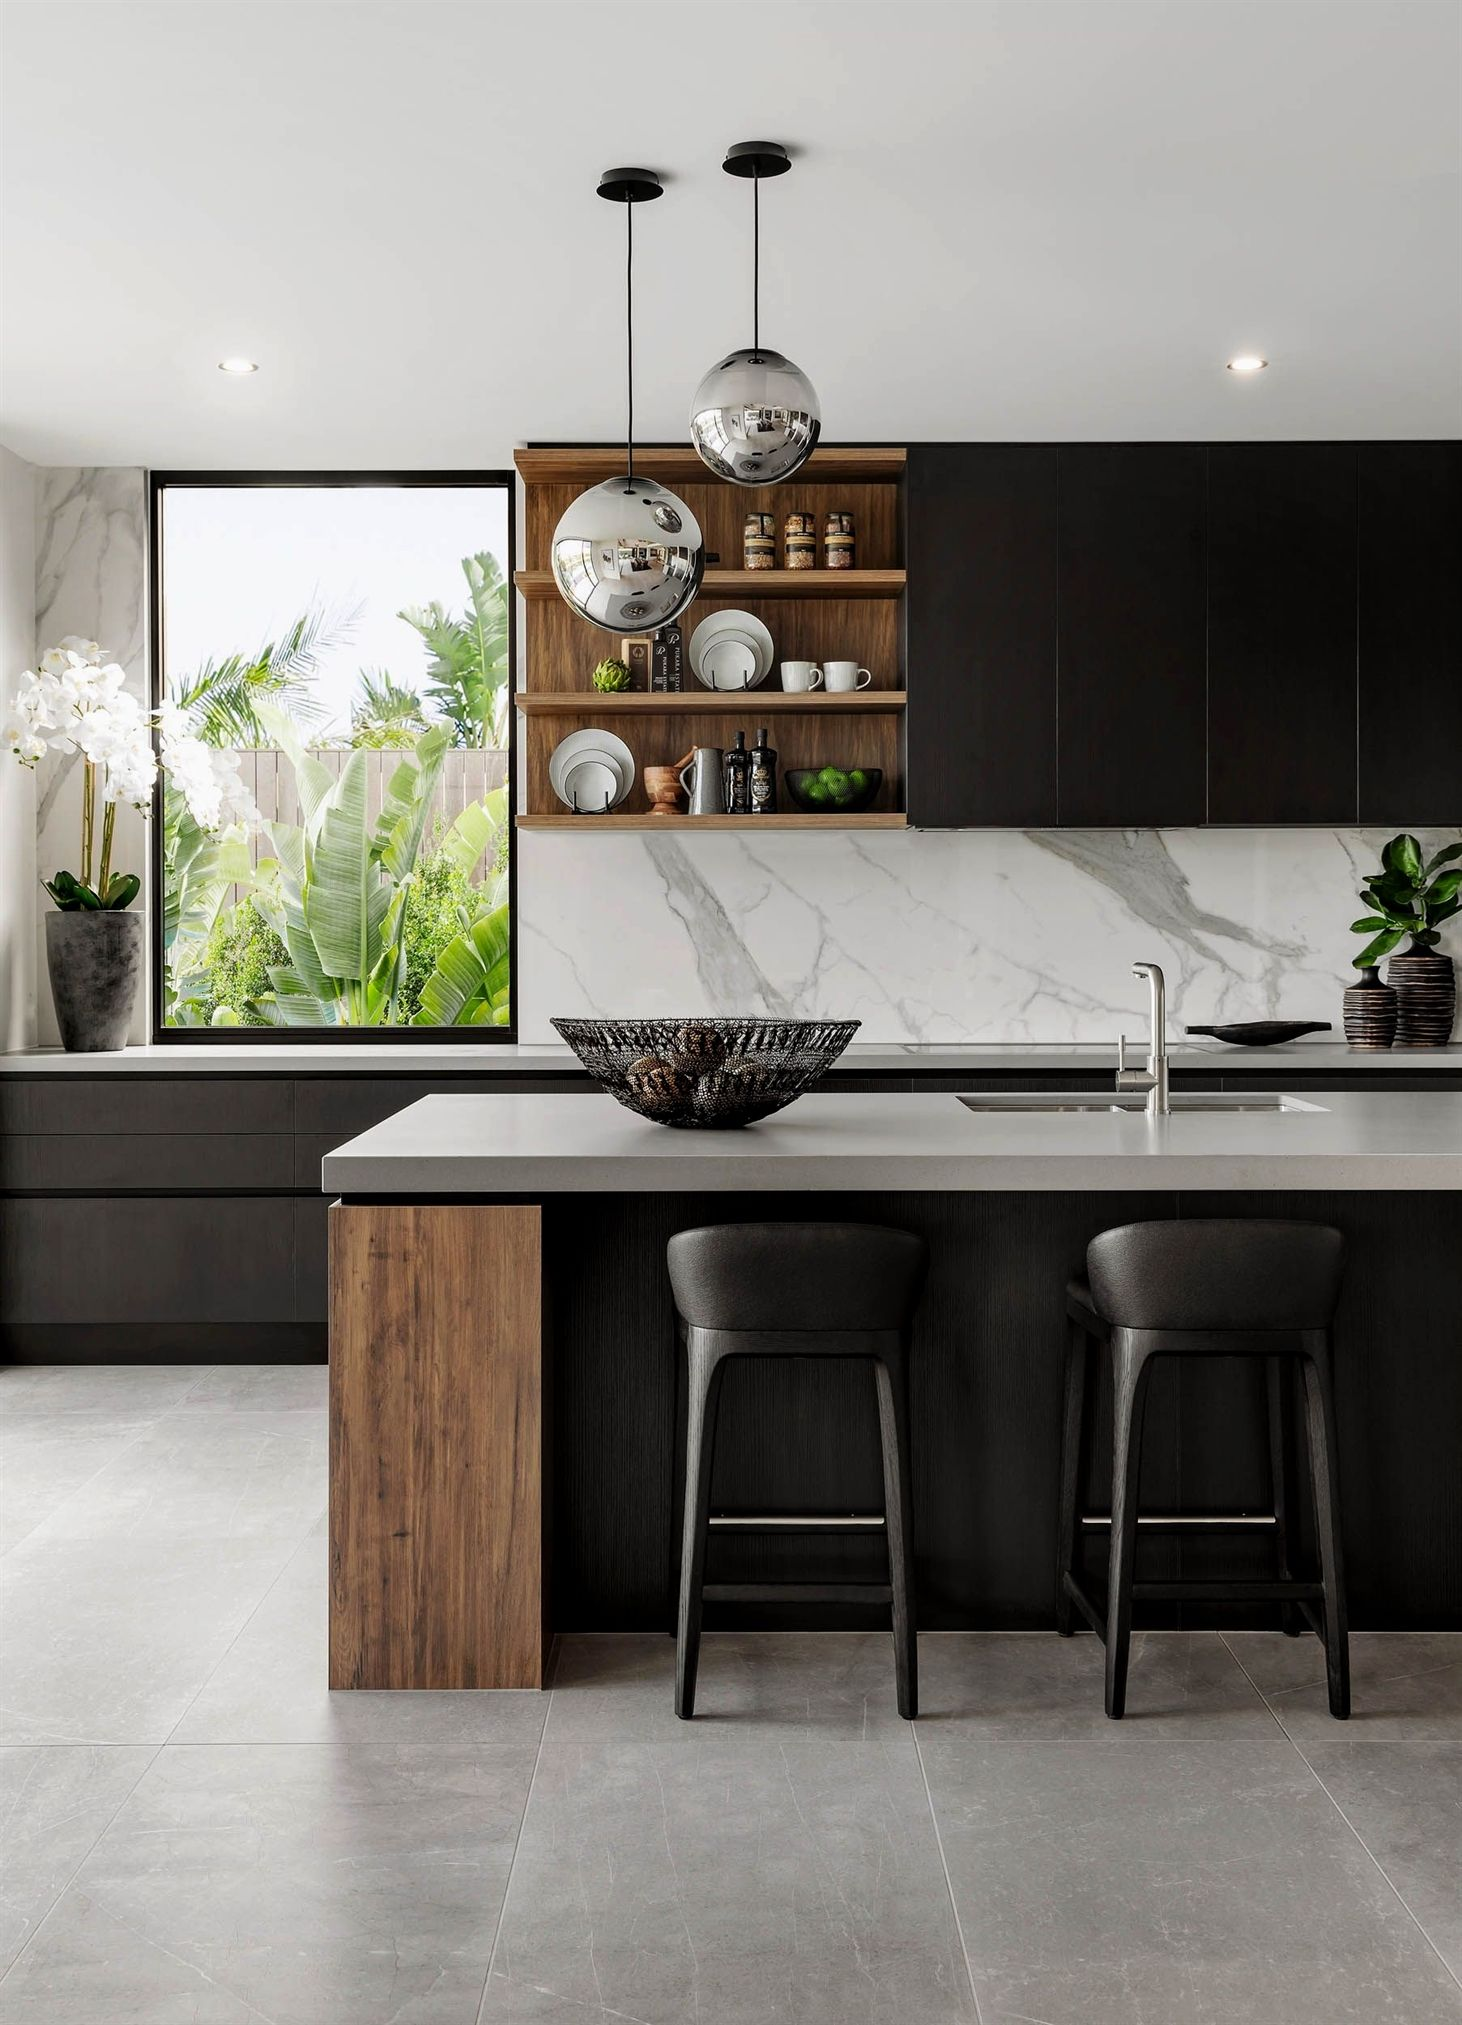 Kitchen // The Signature by Metricon Riviera, on display in